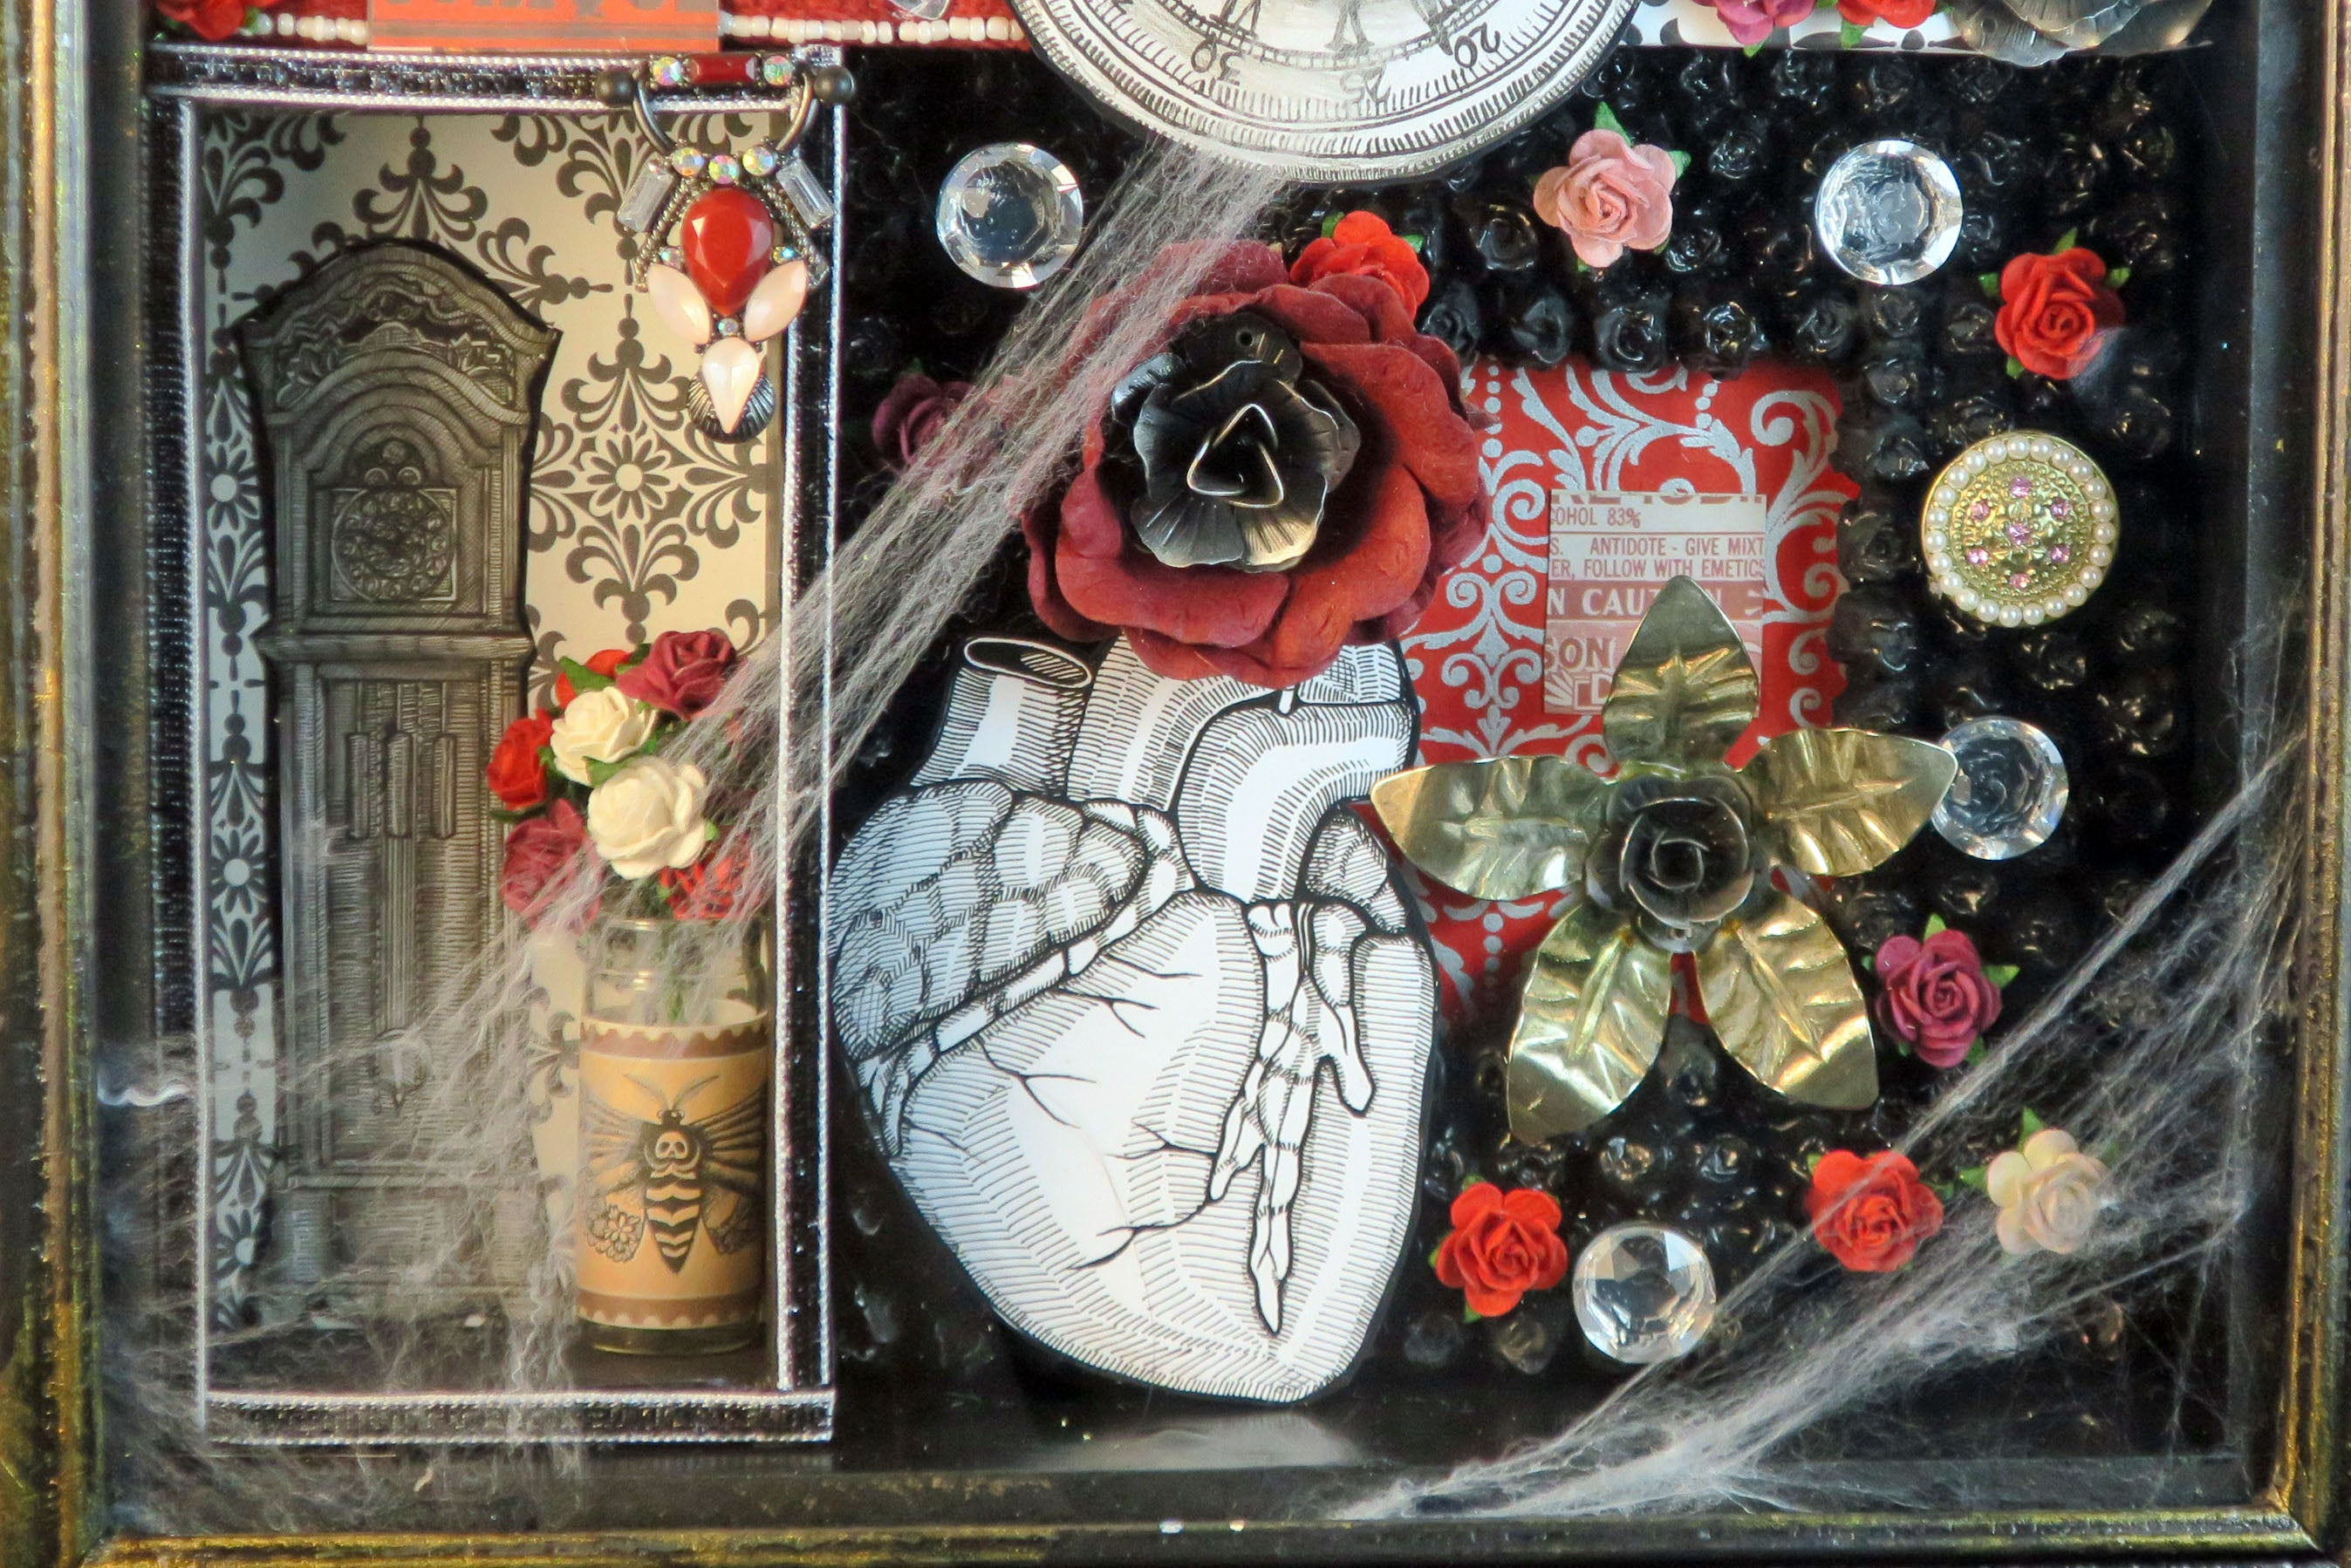 shadowbox art love and time theme with clocks watch skull heart